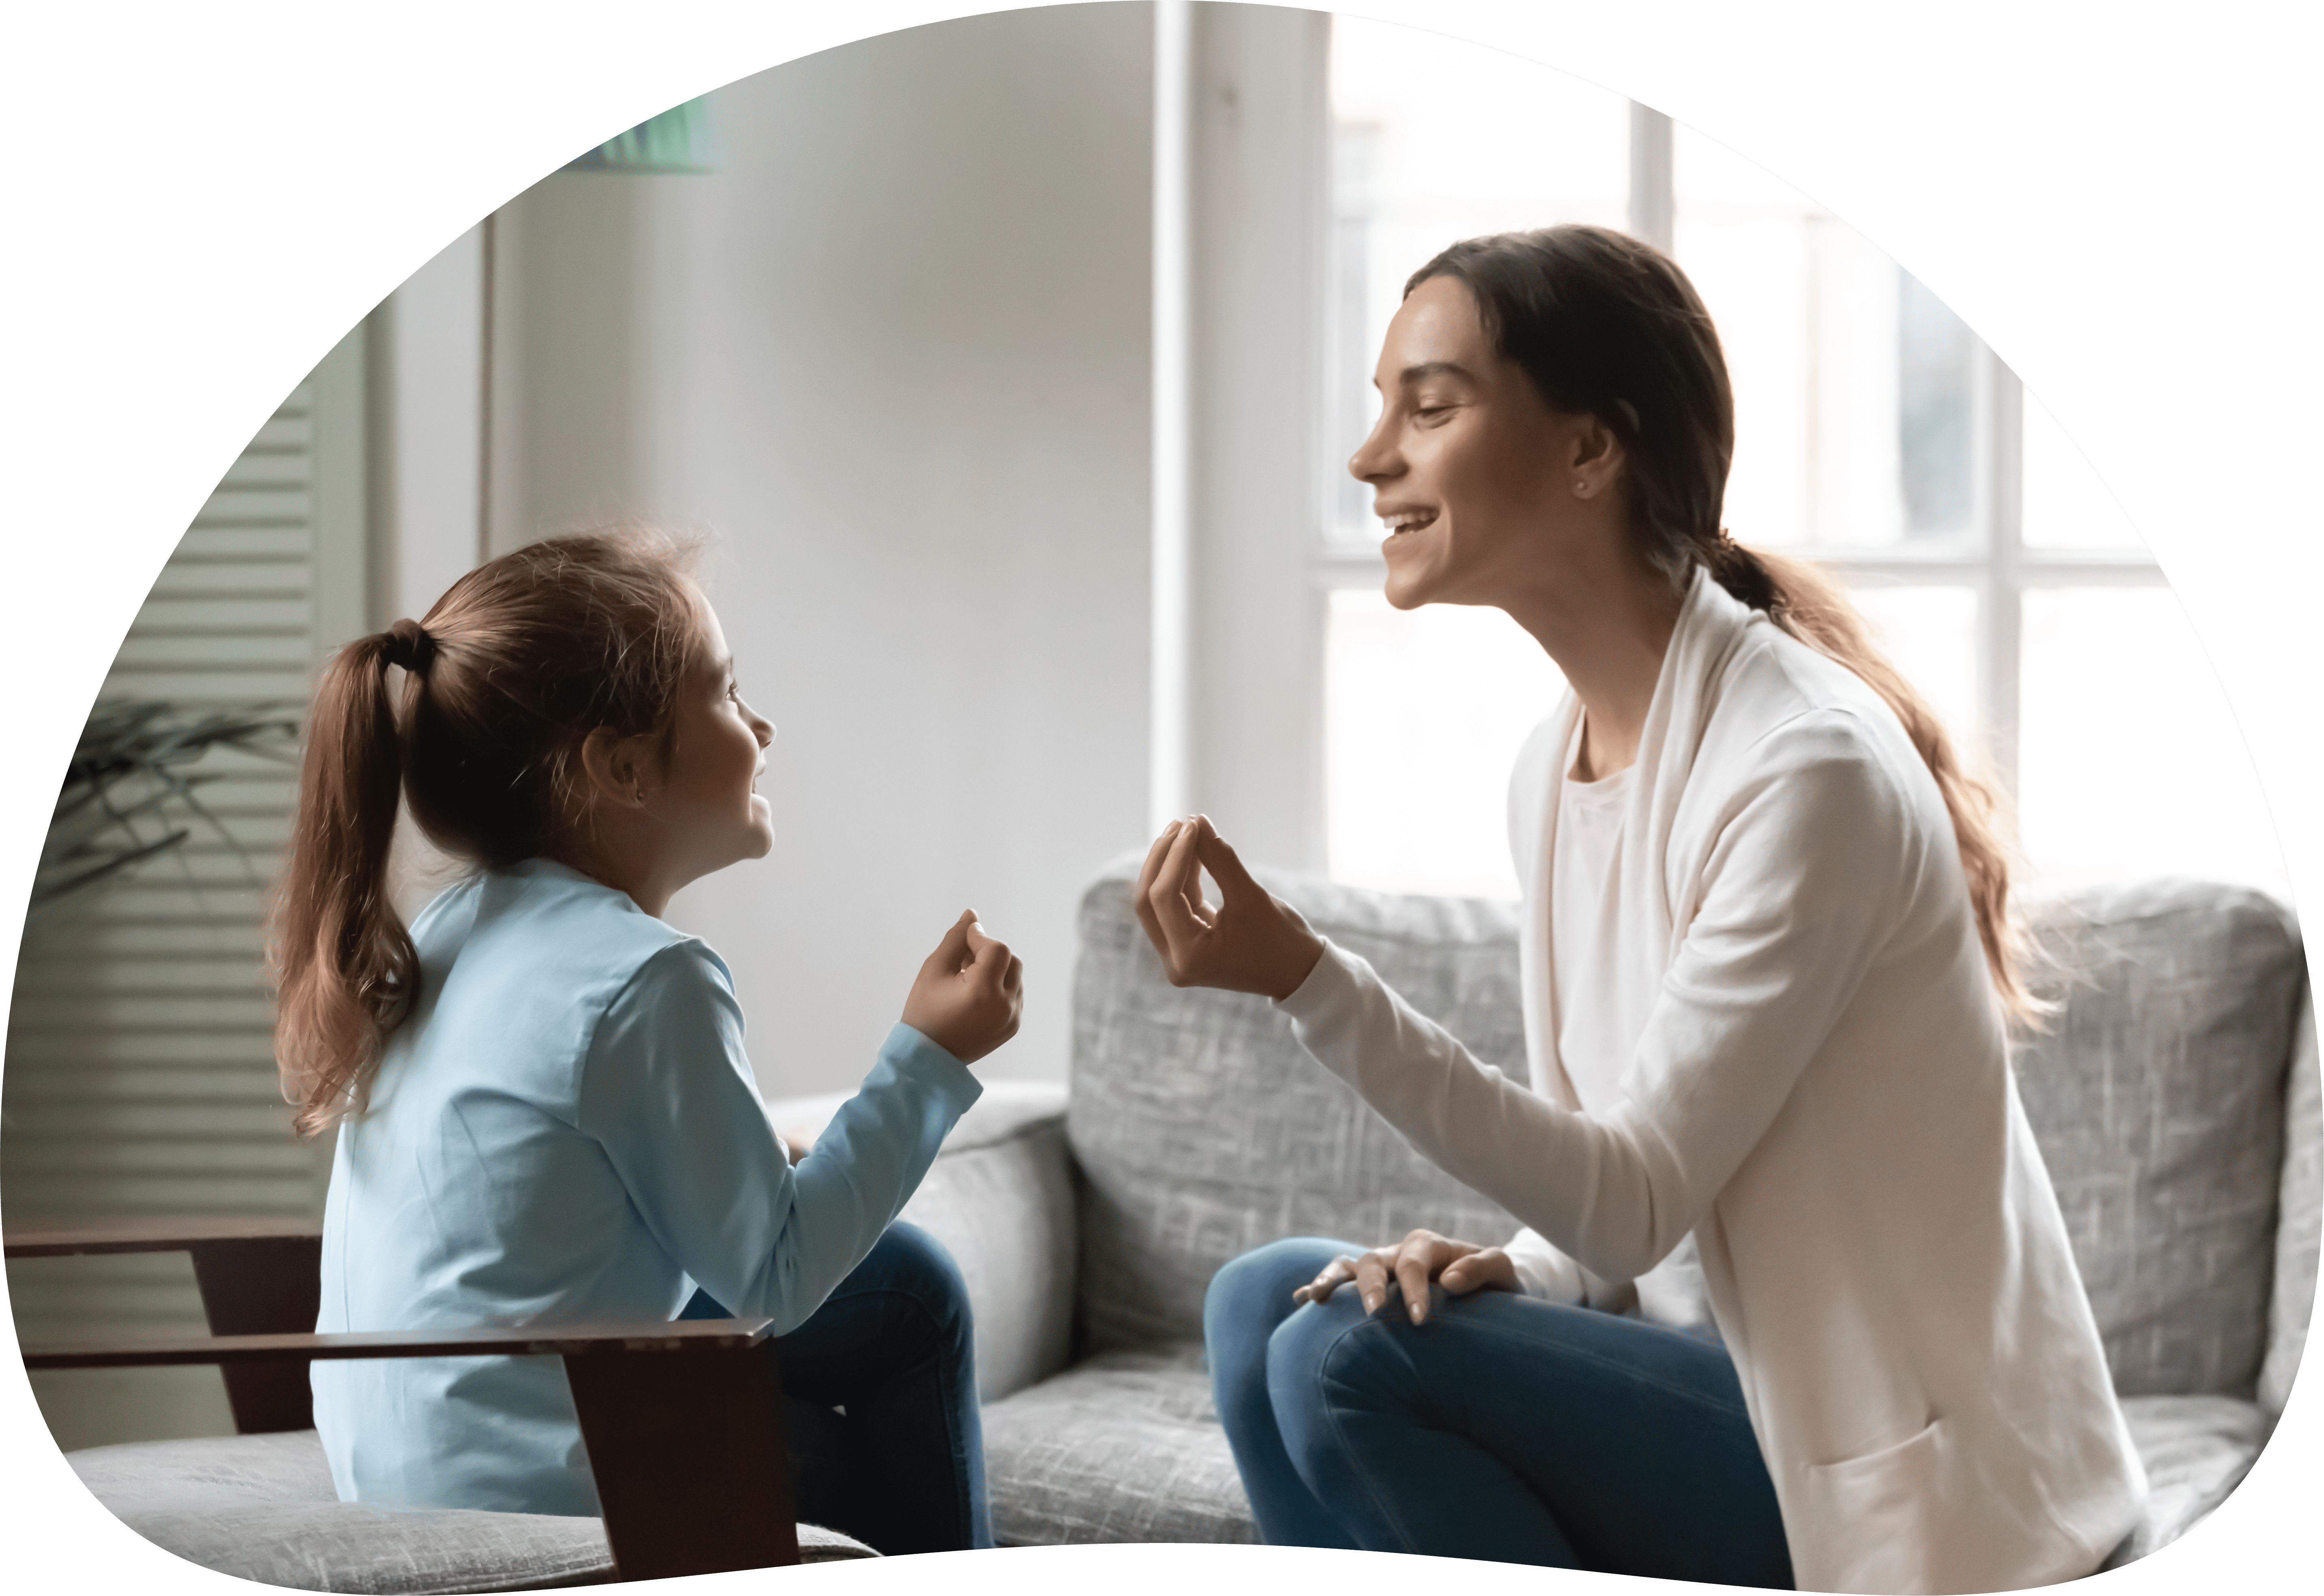 Woman and young girl learning together